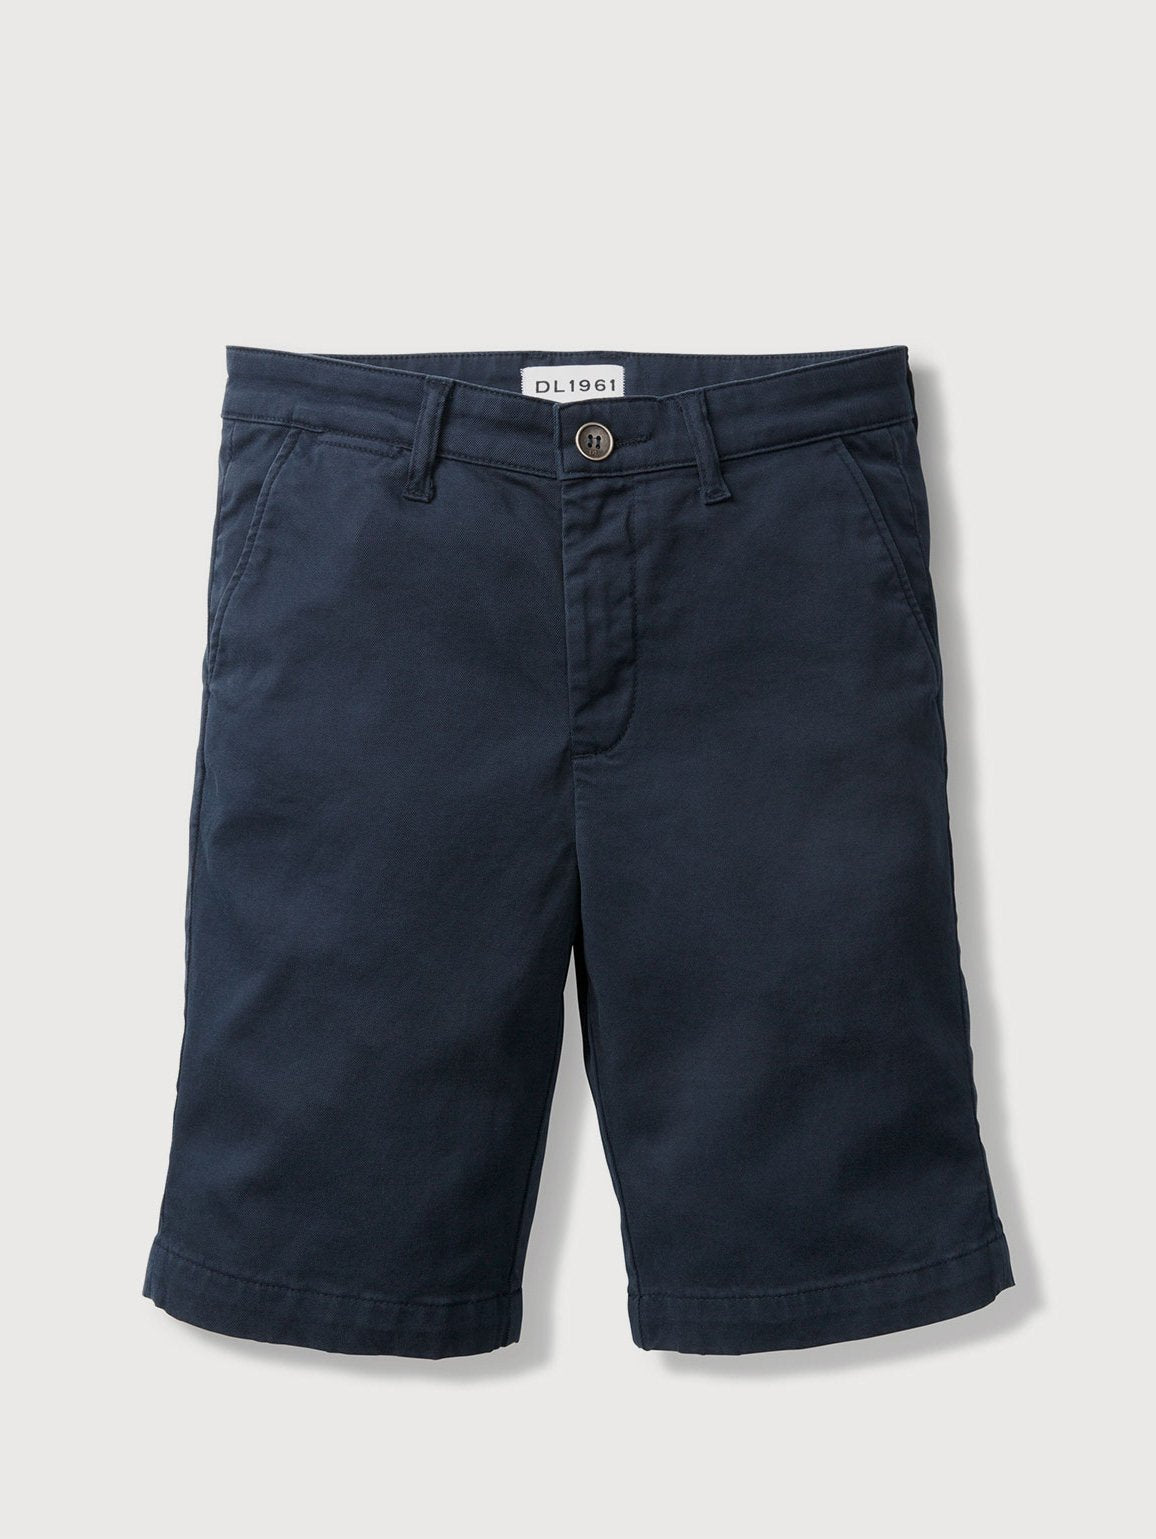 5768b6e17d Boys - Black Chino Shorts - Jacob/B Chino Short Hammond - DL1961 ...